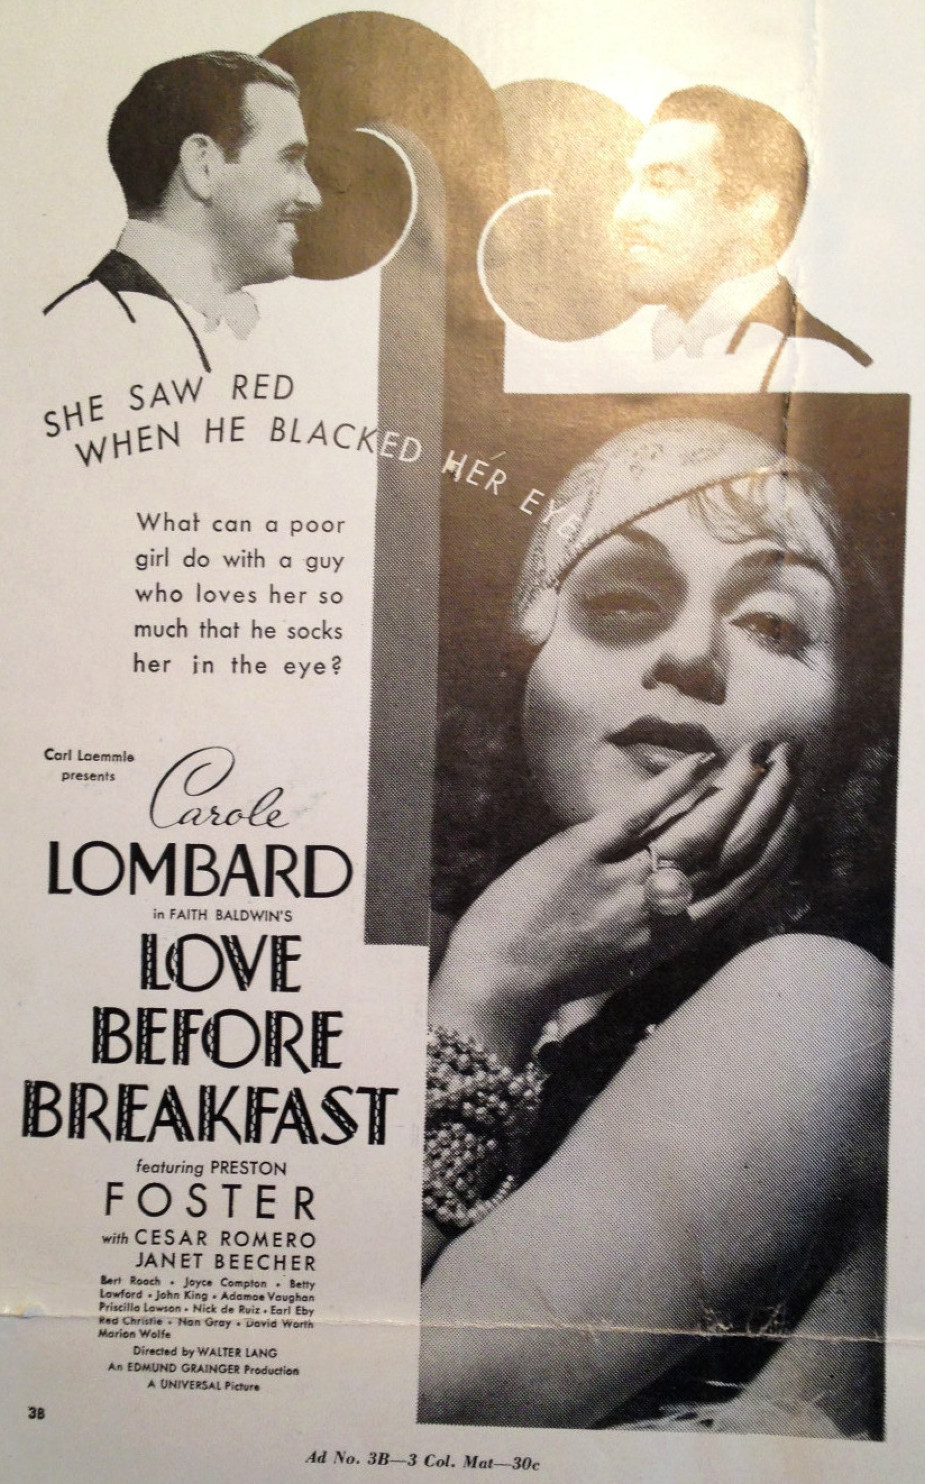 carole lombard love before breakfast pressbook 07a